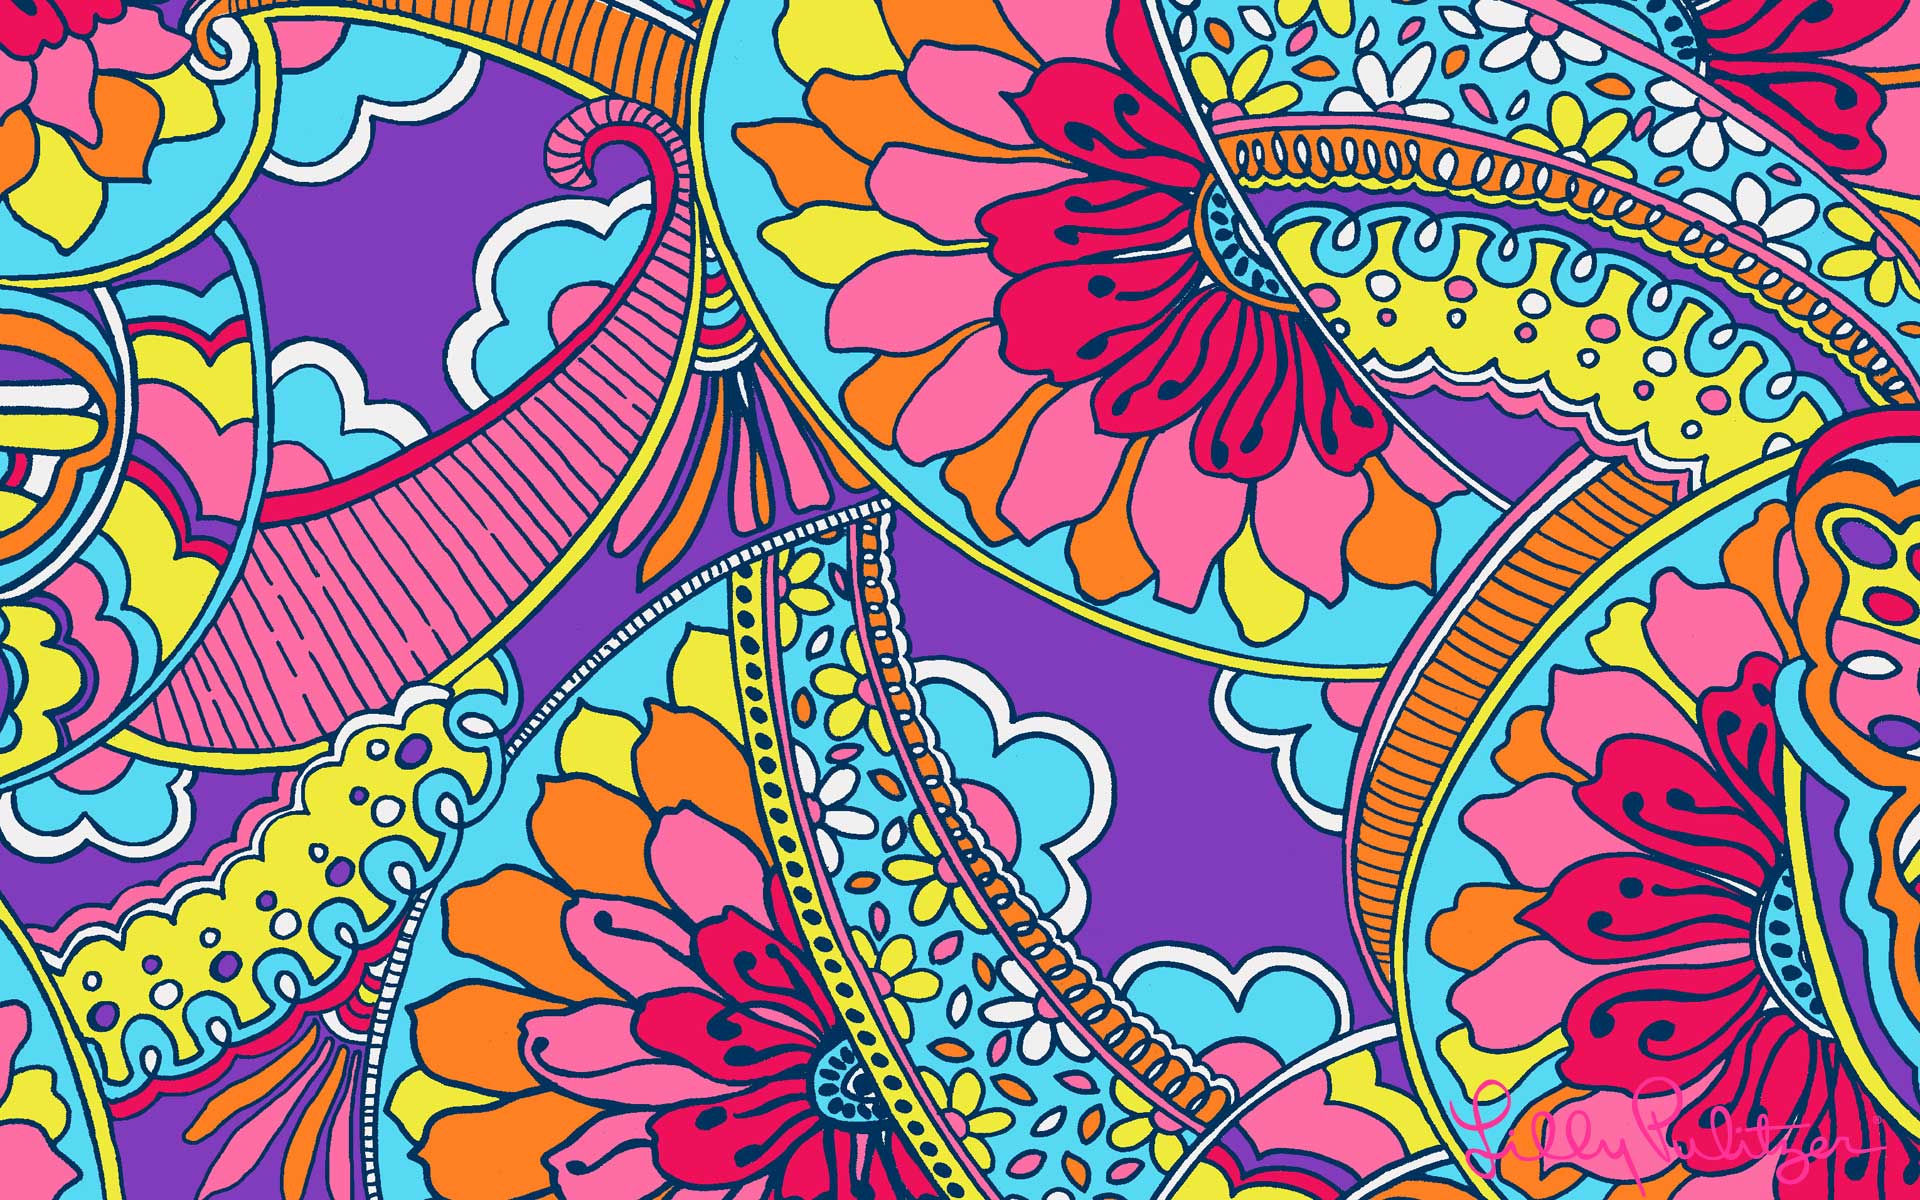 artistic flower design abstract colors colorful wallpaper